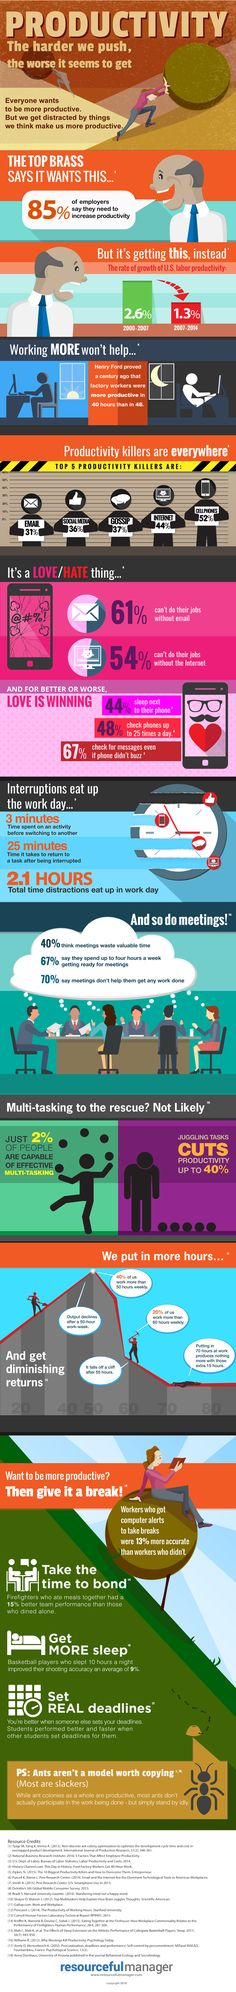 What distracts you at work? Learn how to beat your productivity killers whether cell phones, the internet, gossip, social media, or email.